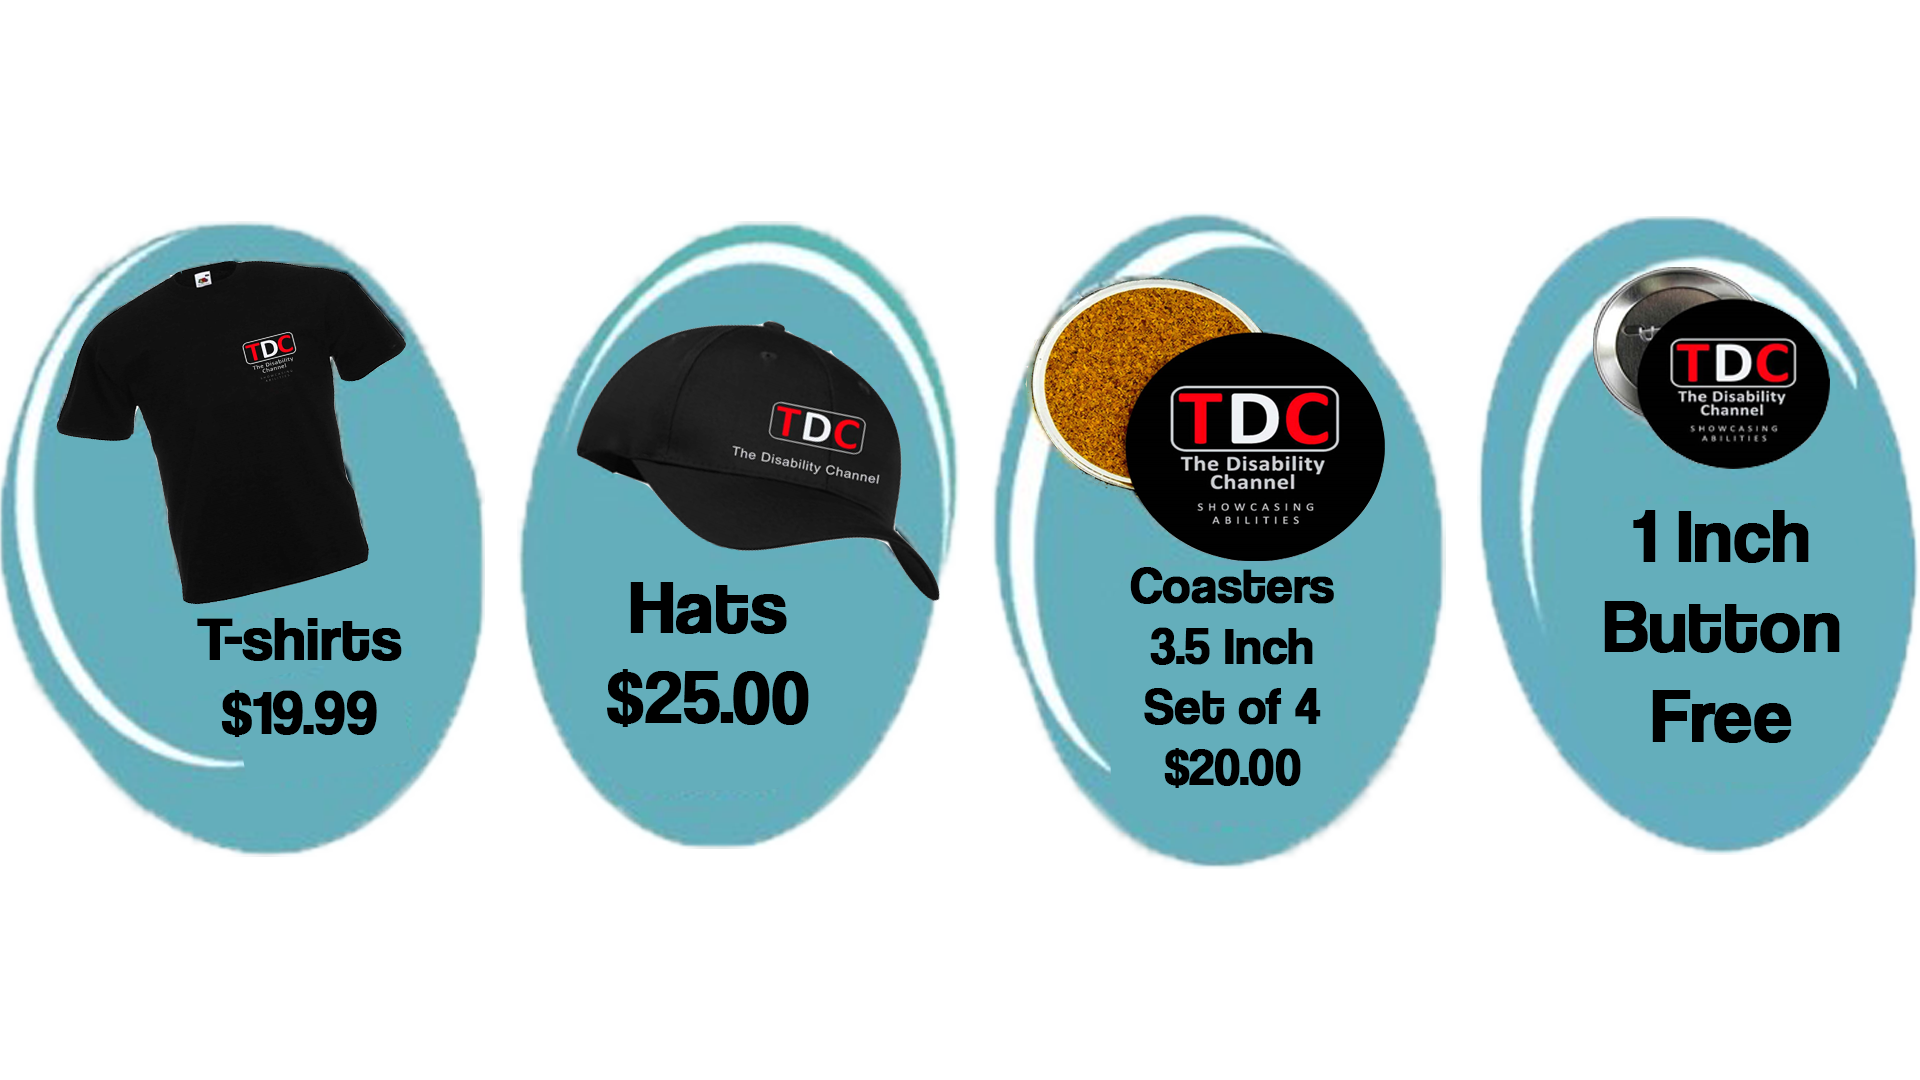 T-shirts $19.99, Hats $25.00, 3.5 inch Coasters $20 for Set of 4, 1 inch Button Free